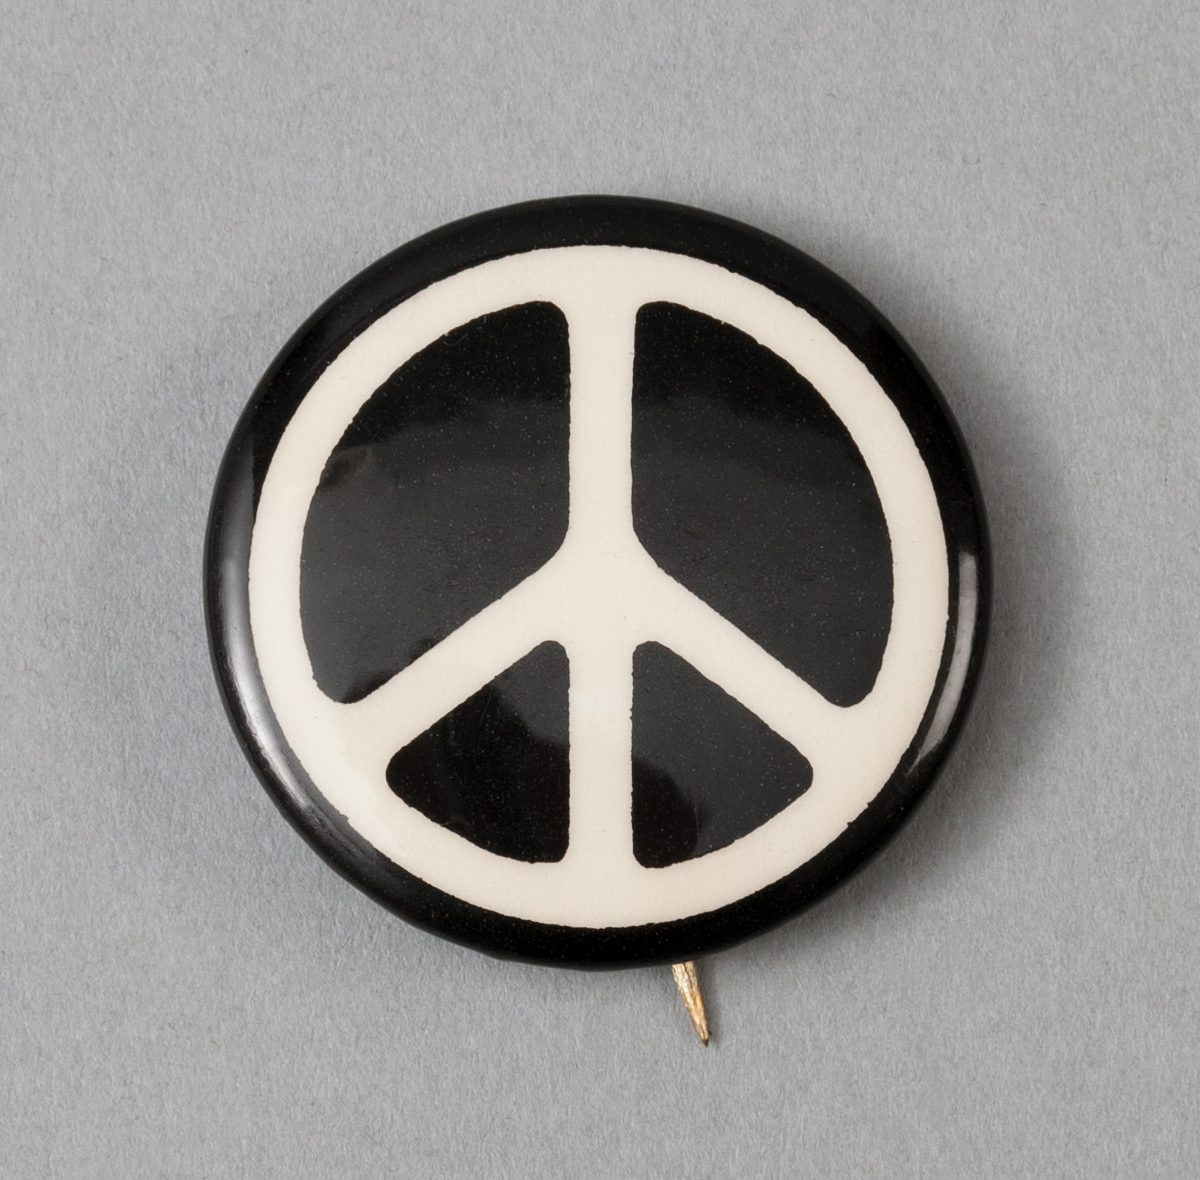 Vintage 1960s Peace Sign Pinback Button